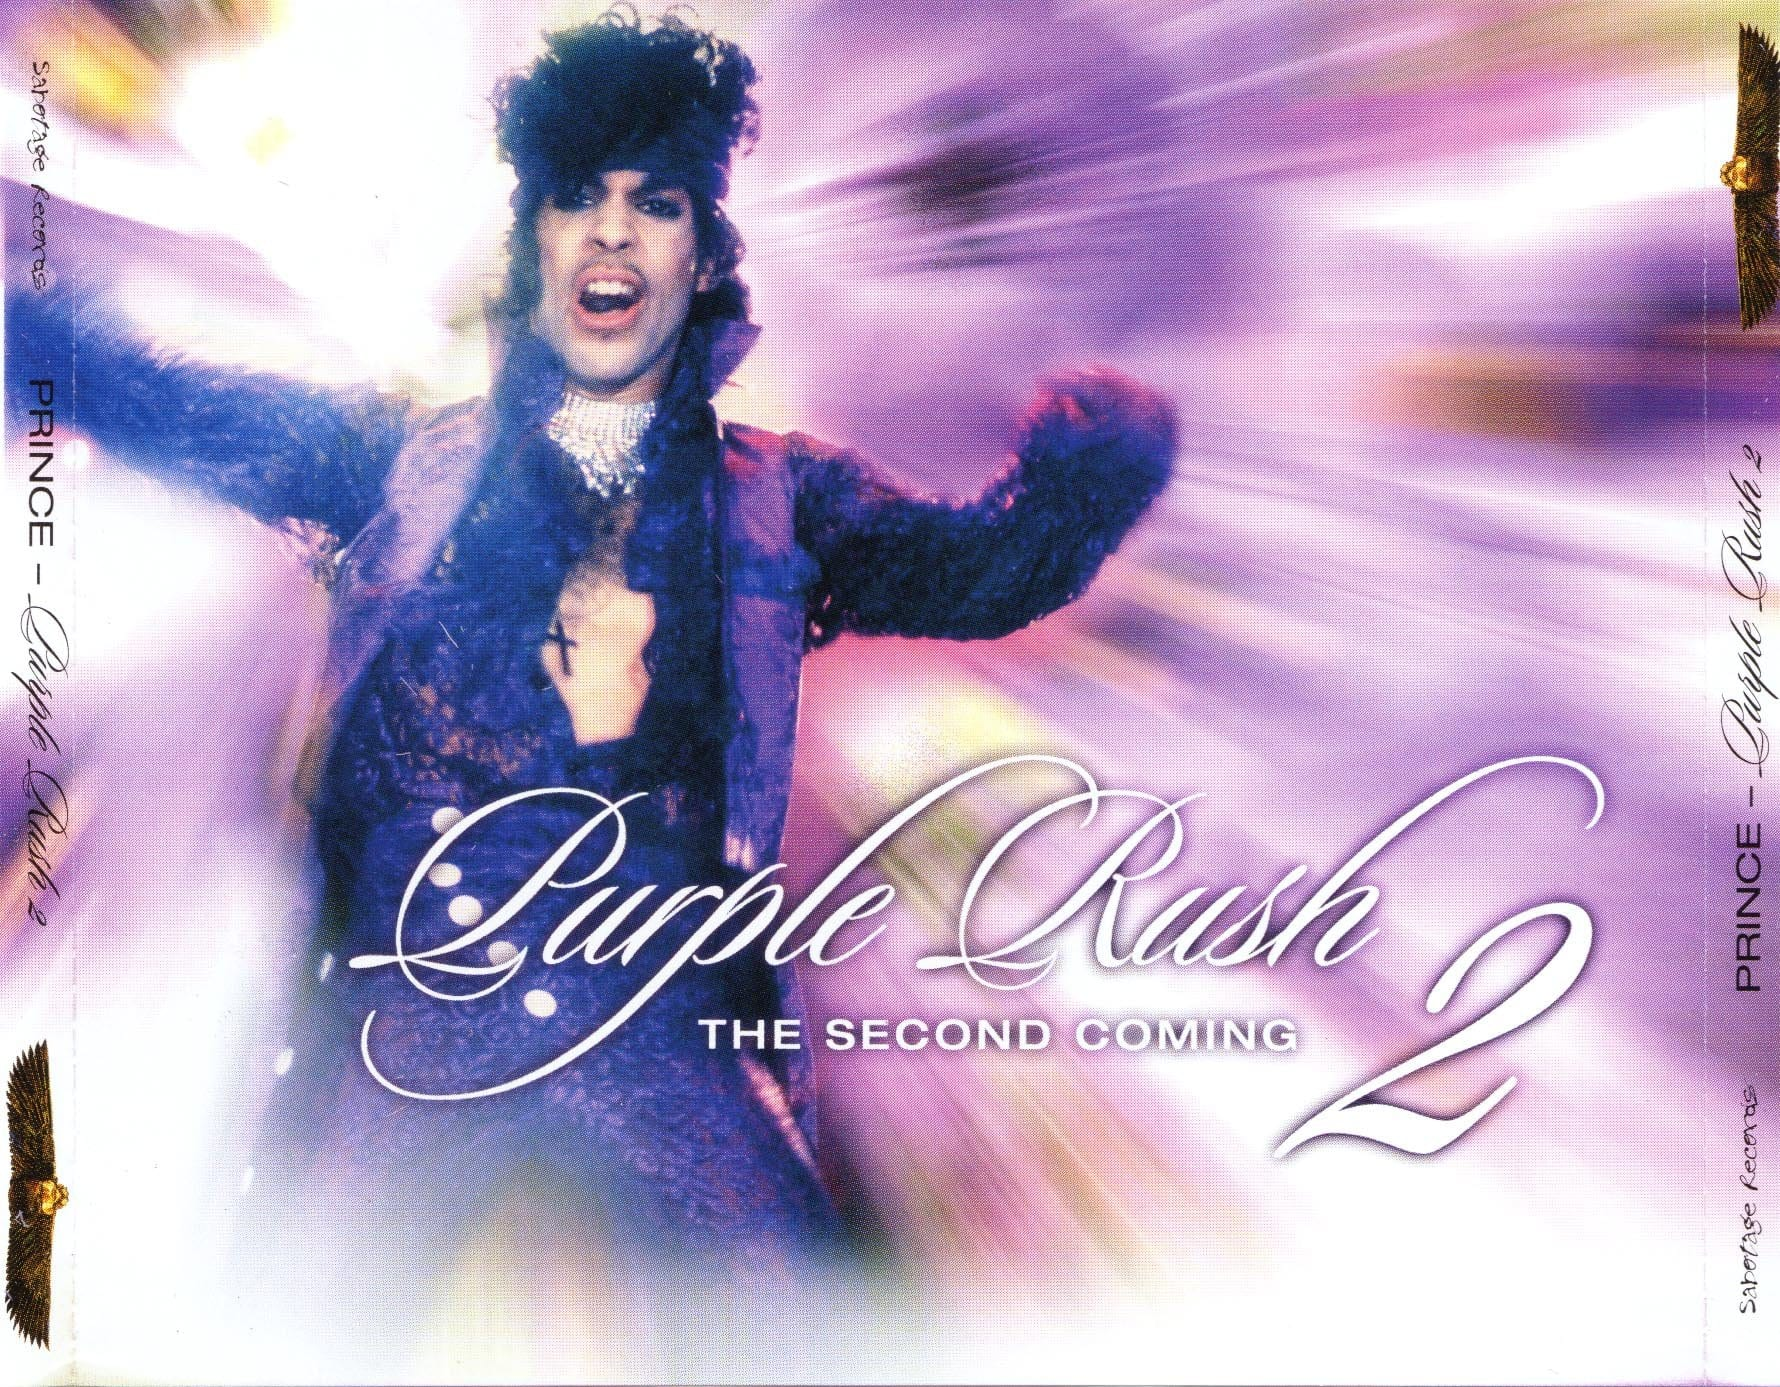 Prince And The Revolution - Purple Rush 1: Rehearsals & Concerts 1983-85 (2008) 6 CD SET 9